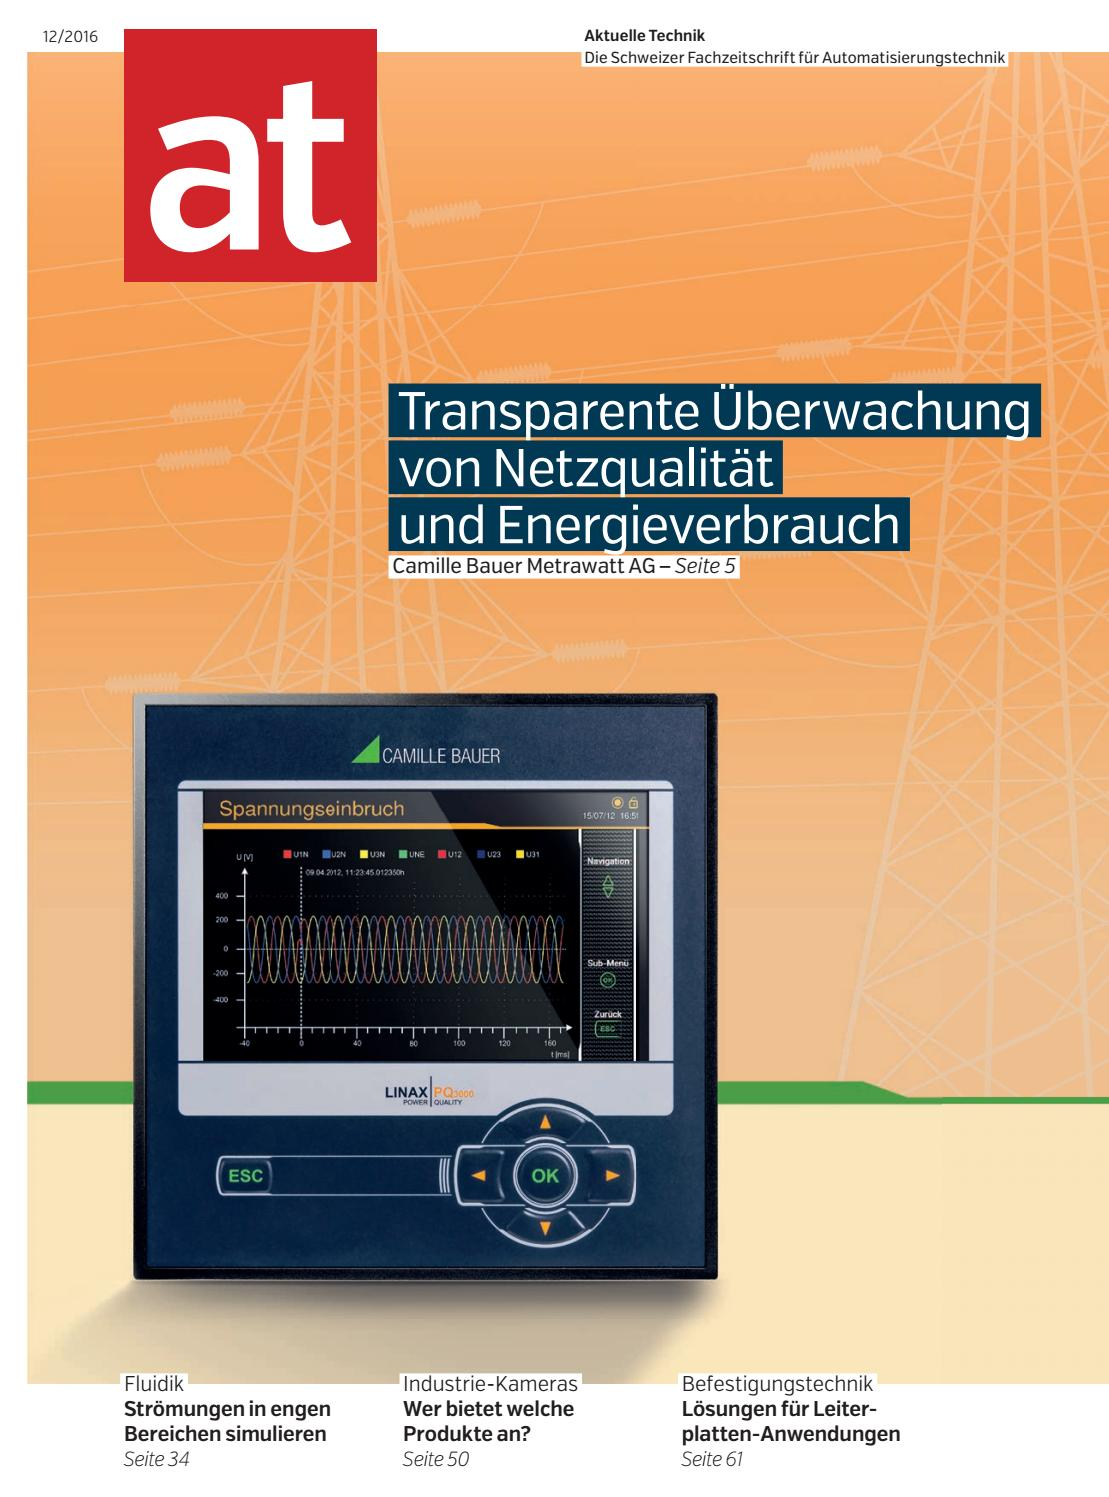 at - Aktuelle Technik 12 2016 by BL Verlag AG - issuu